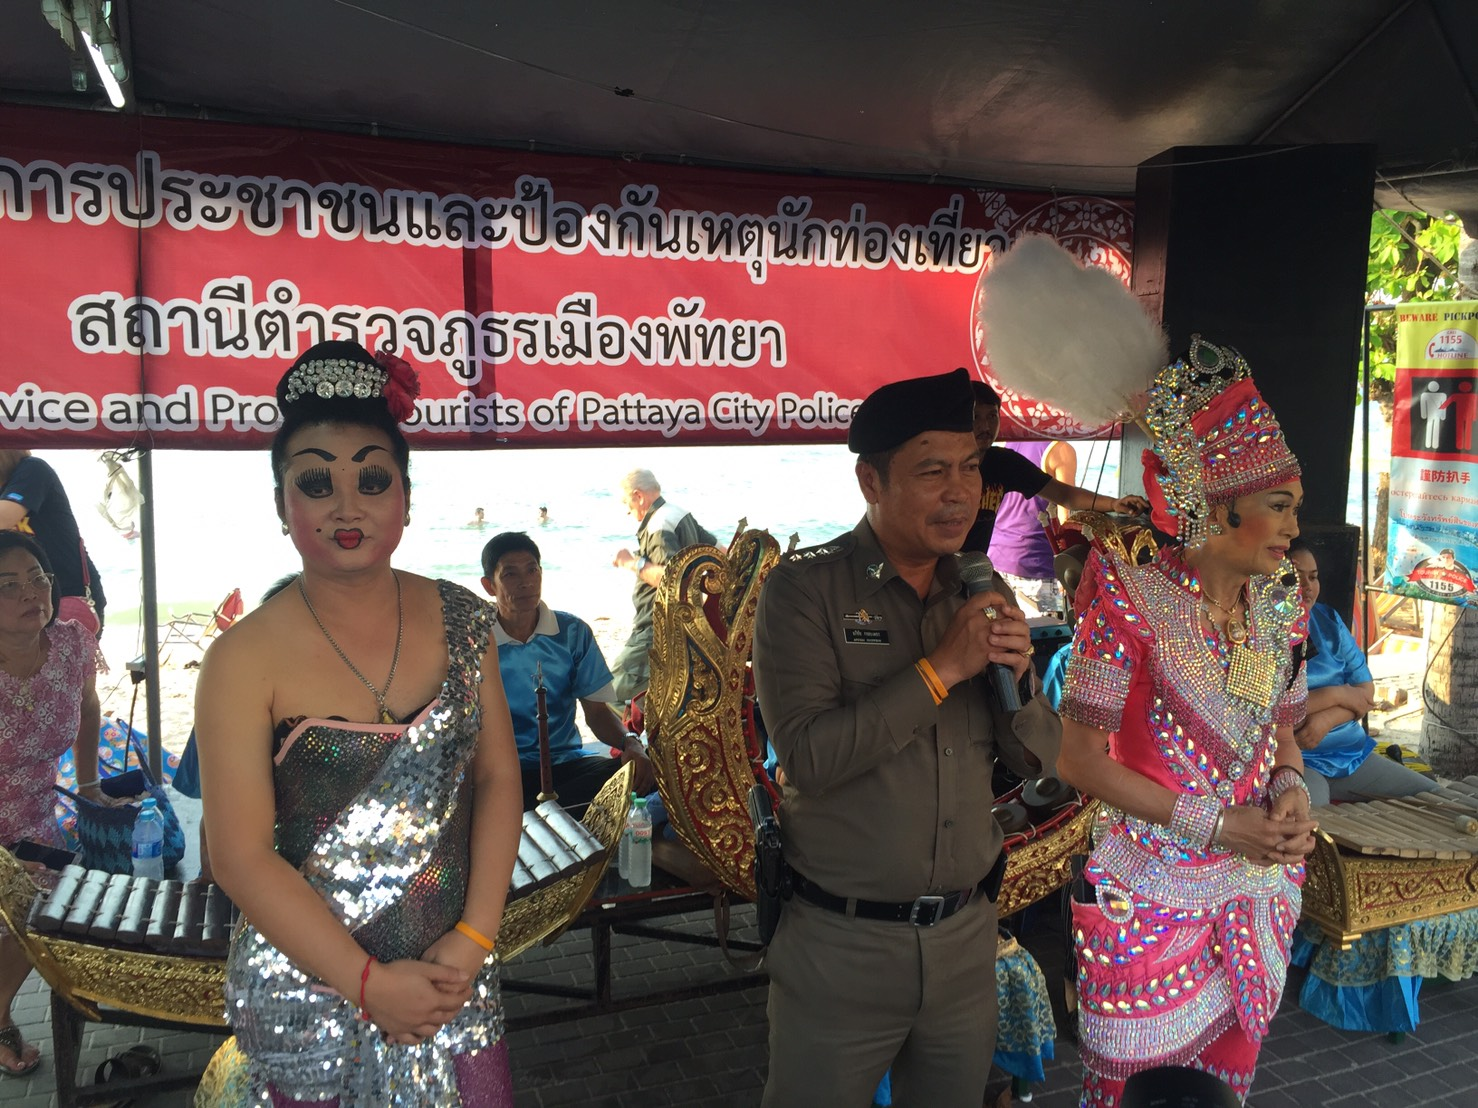 Police Chief Pol. Col. Apichai Krobpetch announces the special Valentine's Day Likay performance by the Pattaya Police at the Tourist Assistance Center on Pattaya Beach Road.